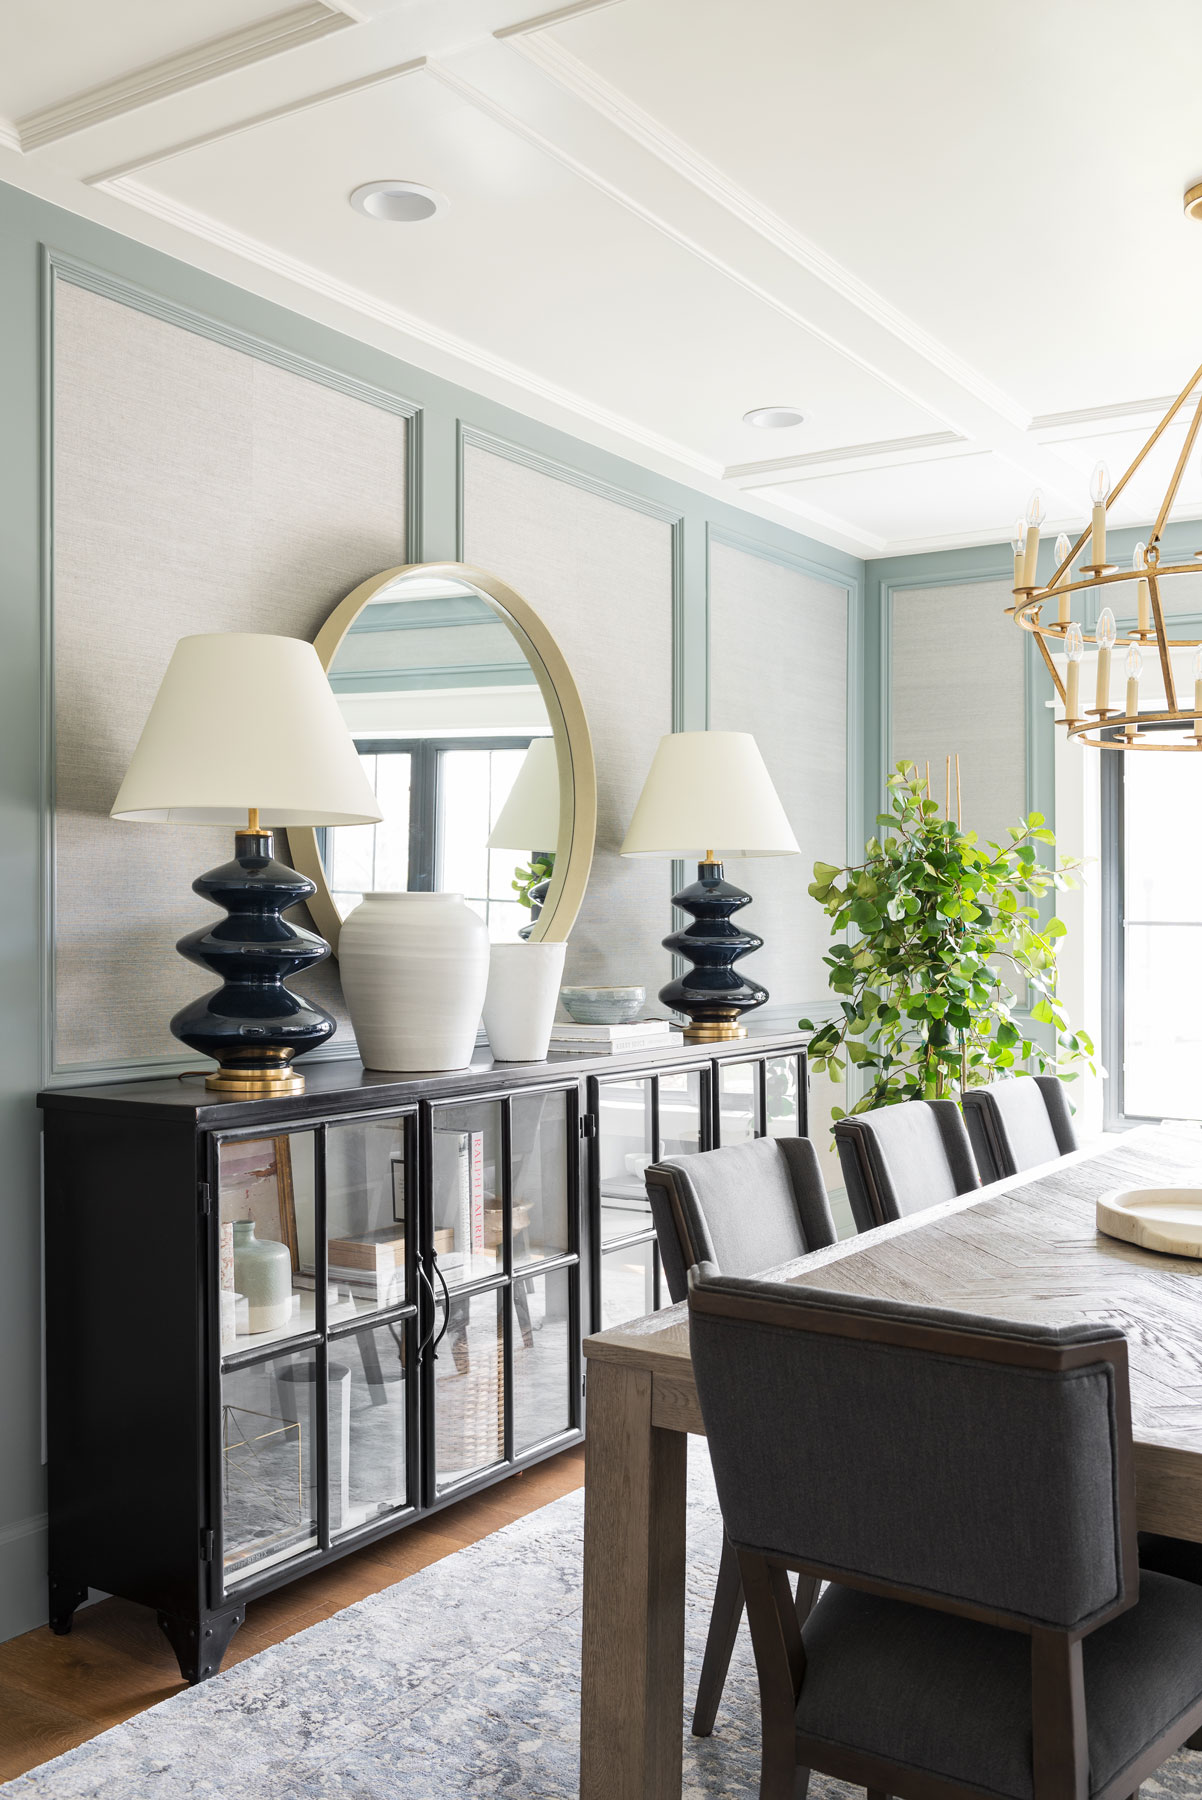 Northridge Remodel: The Entry + Dining